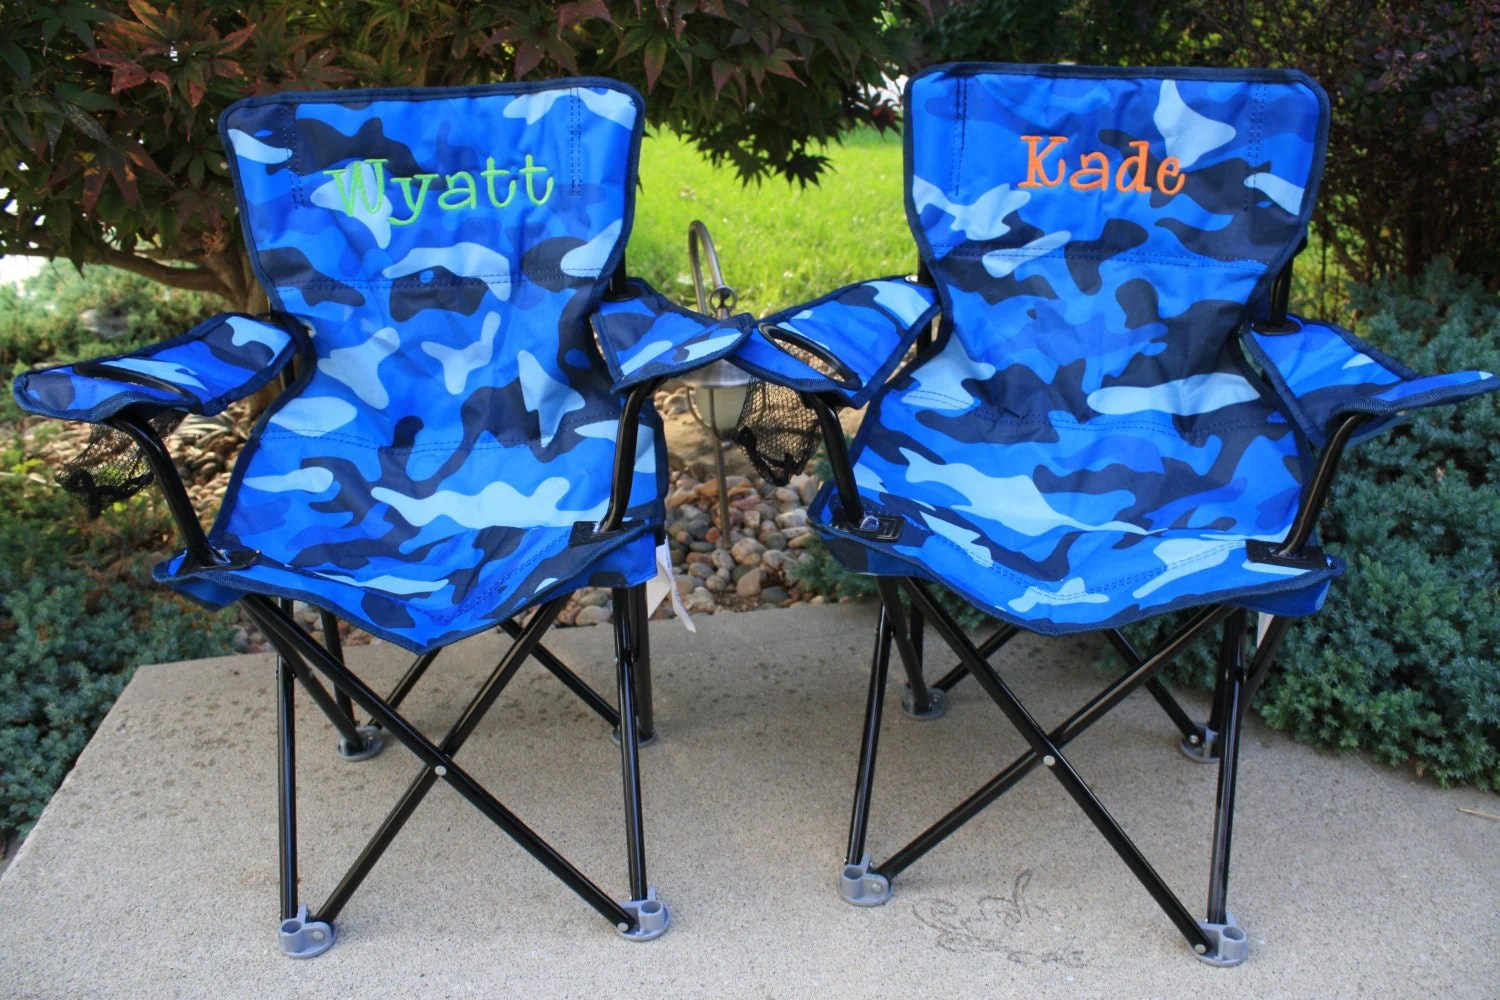 Toddler Boy Chair Personalized Toddler Boy Folding Camping Chair